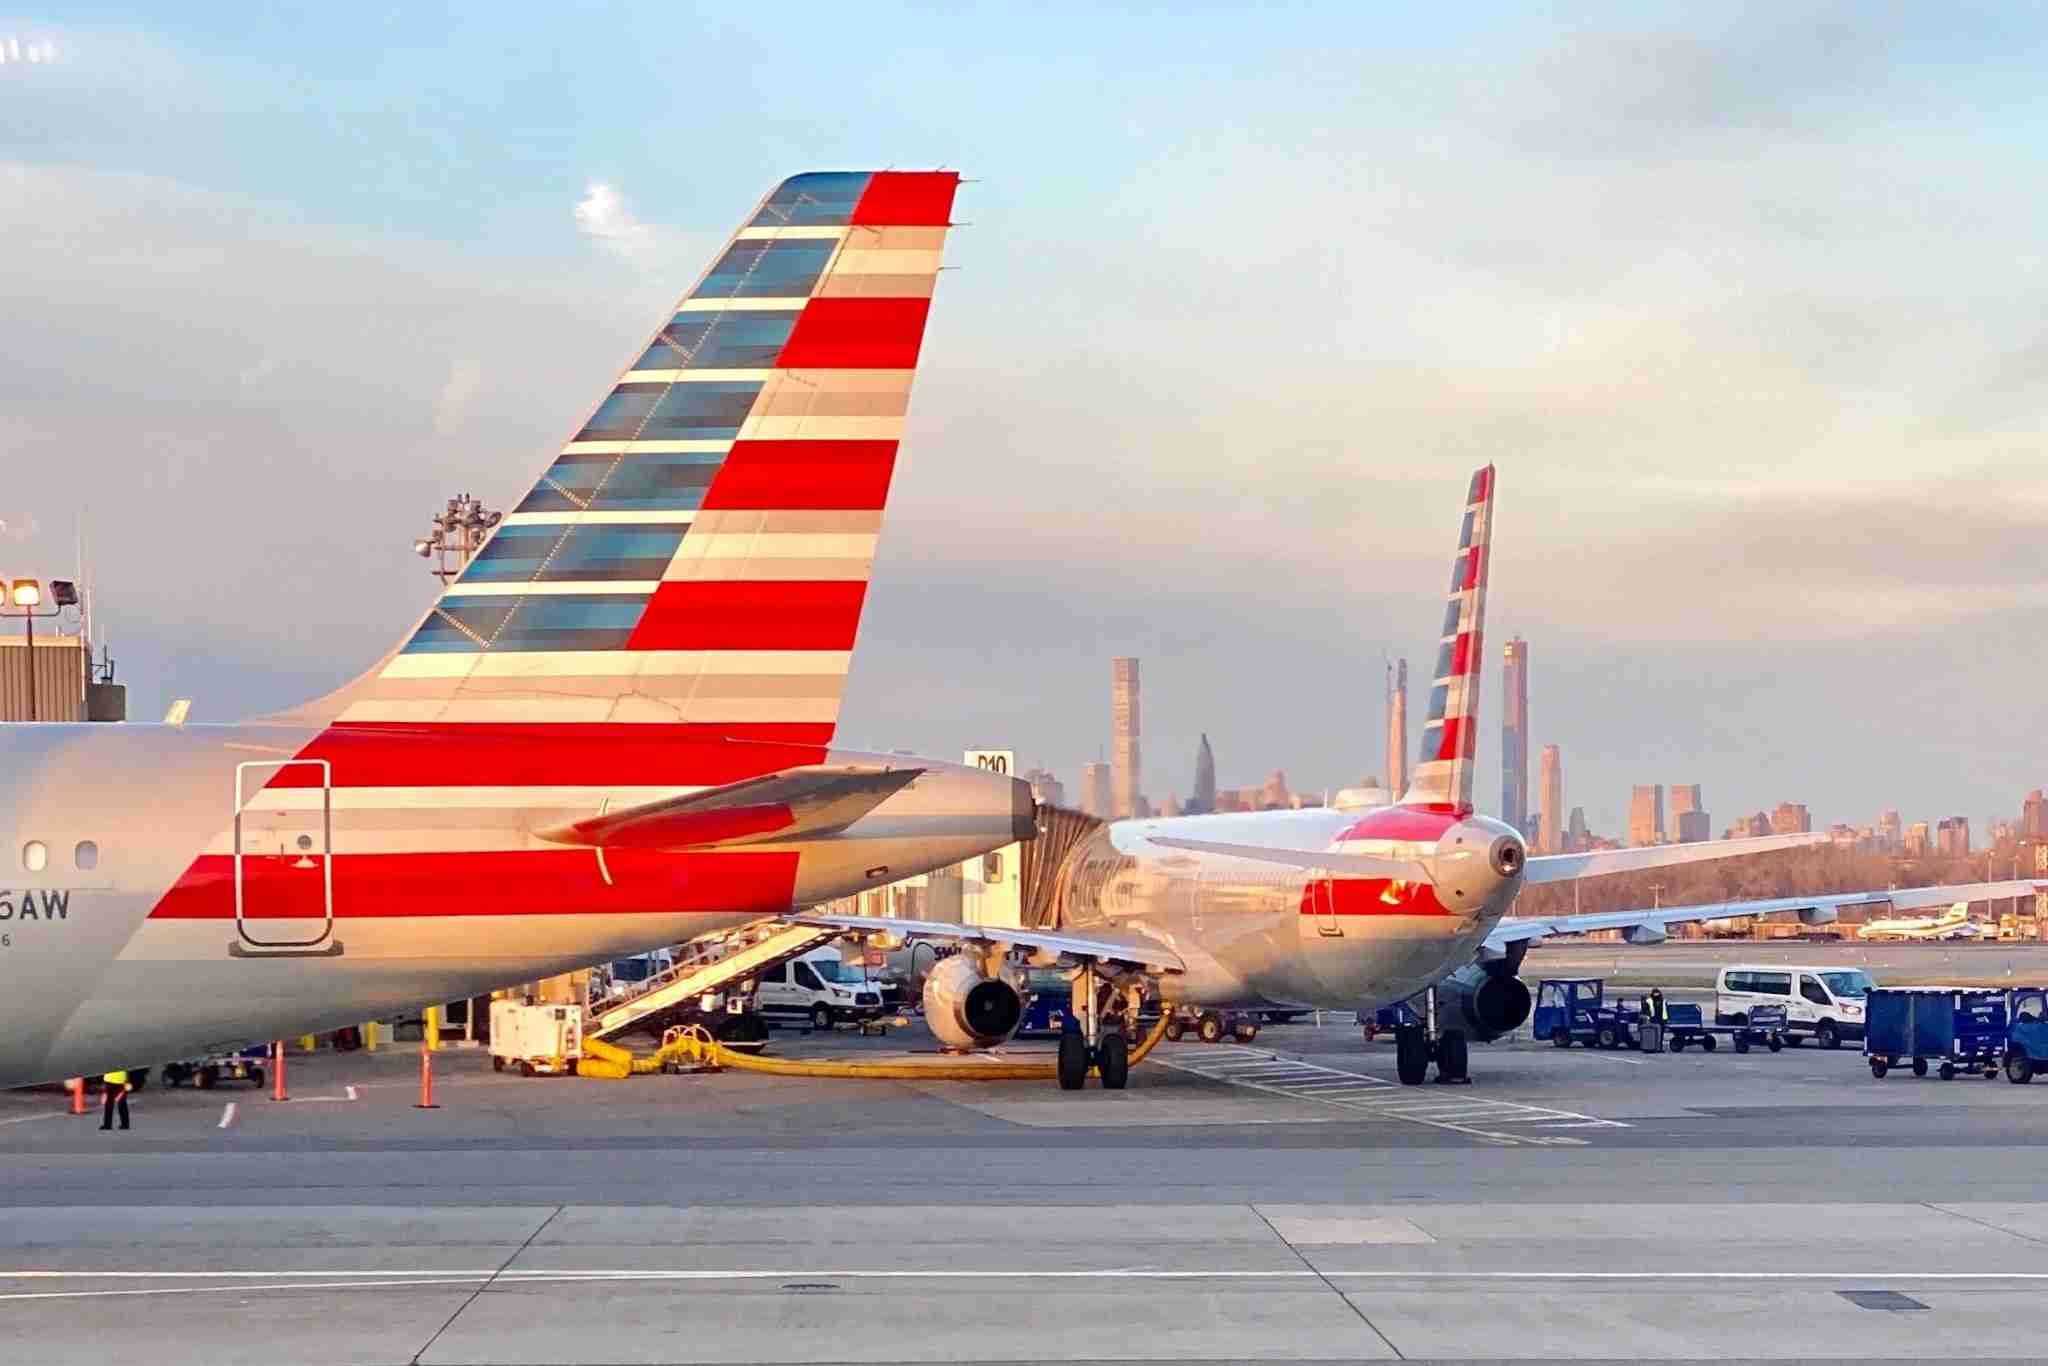 Etihad Guest is usually your best bet for long-haul American flights. (Photo by The Points Guy)